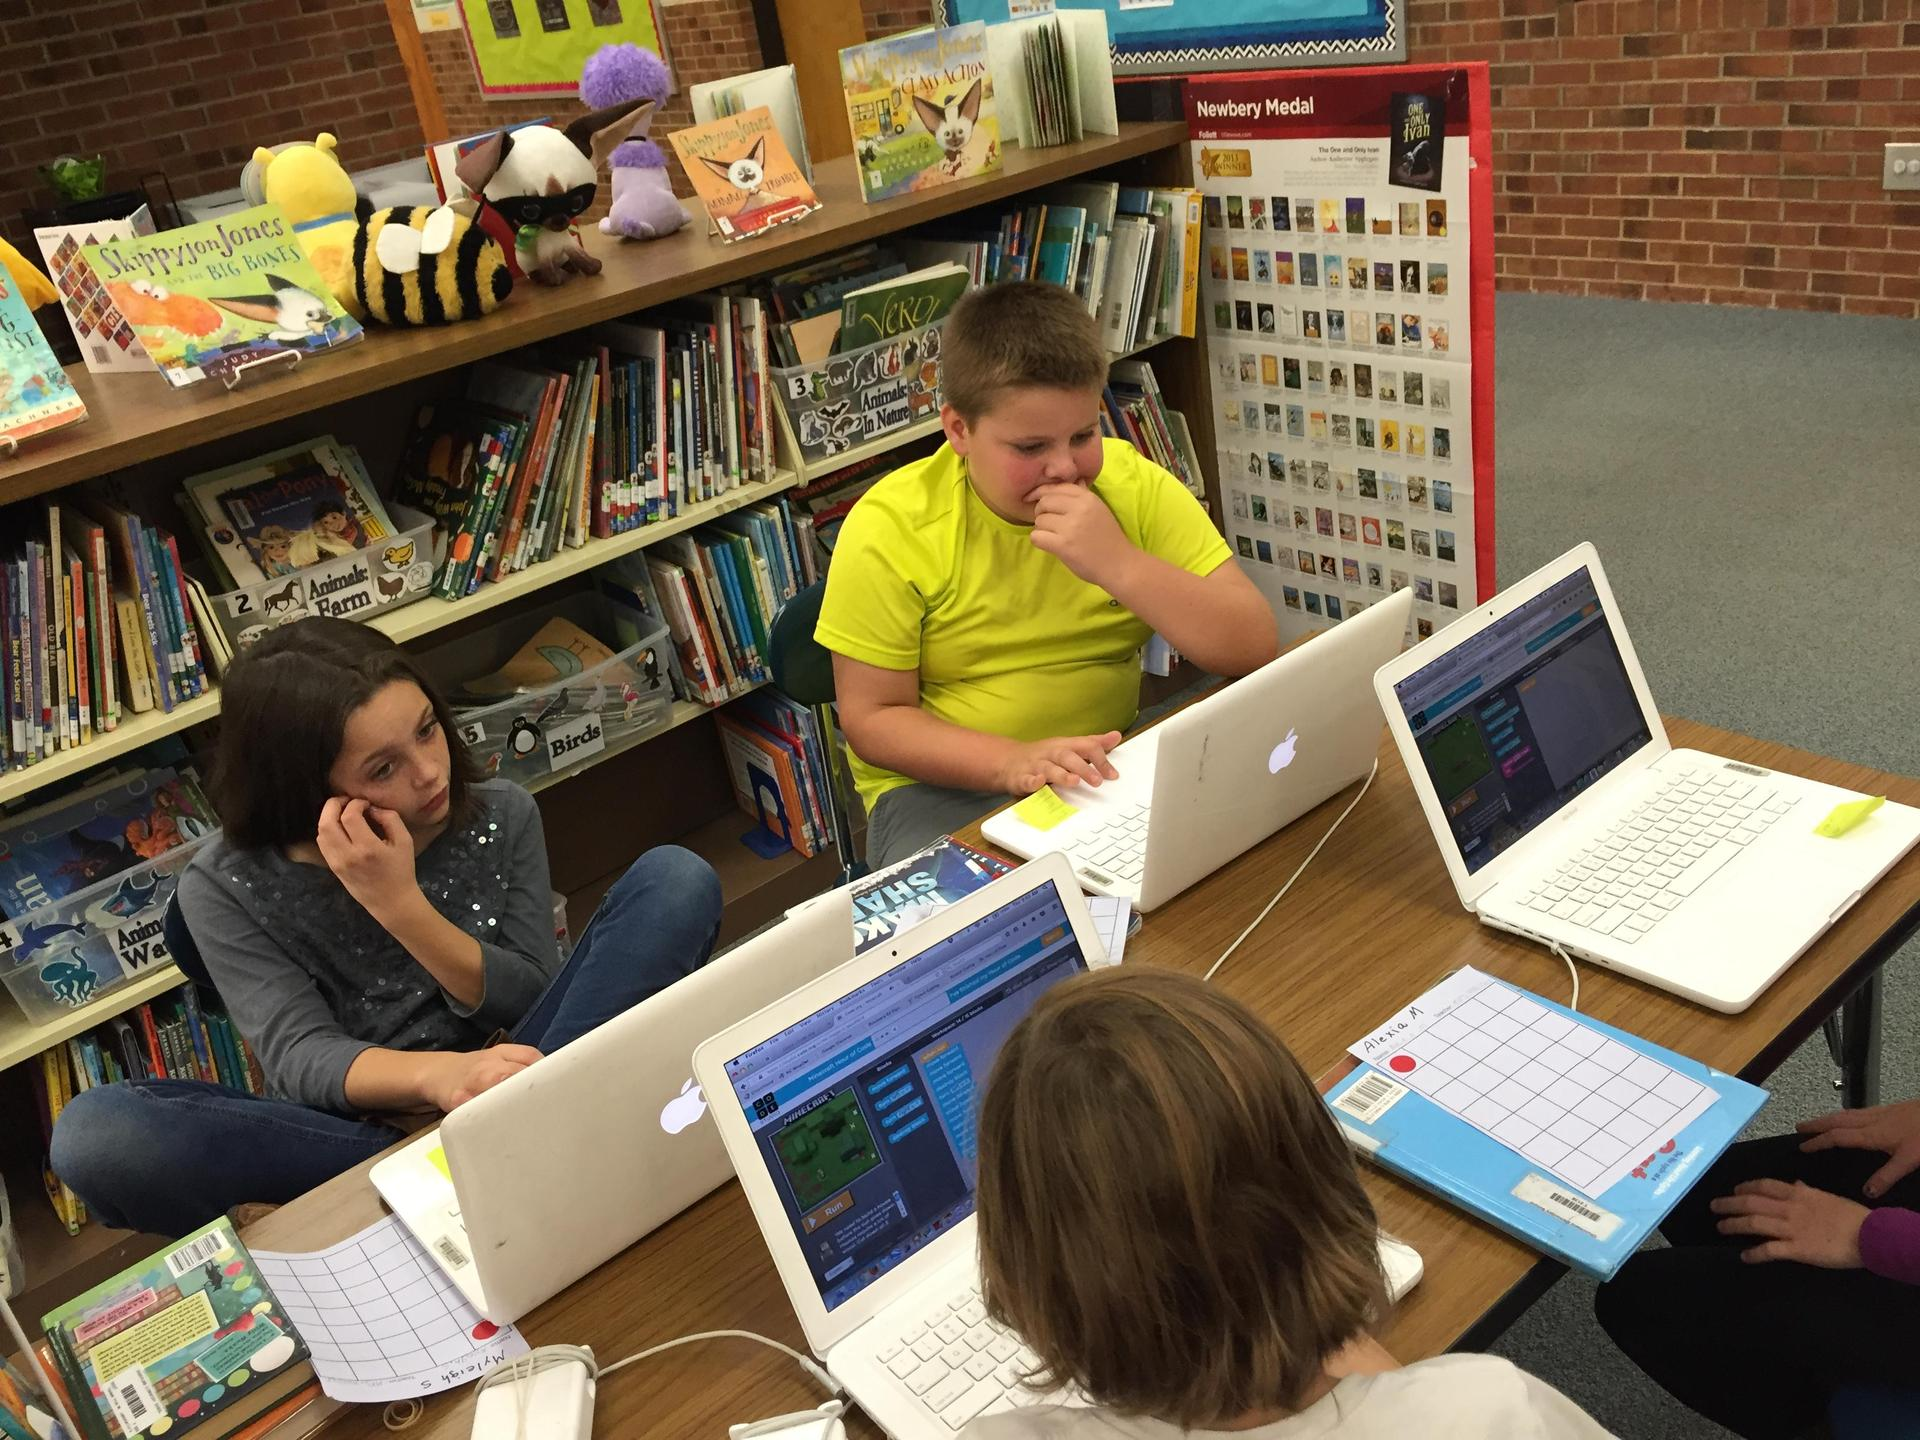 Coding using Hour of Code